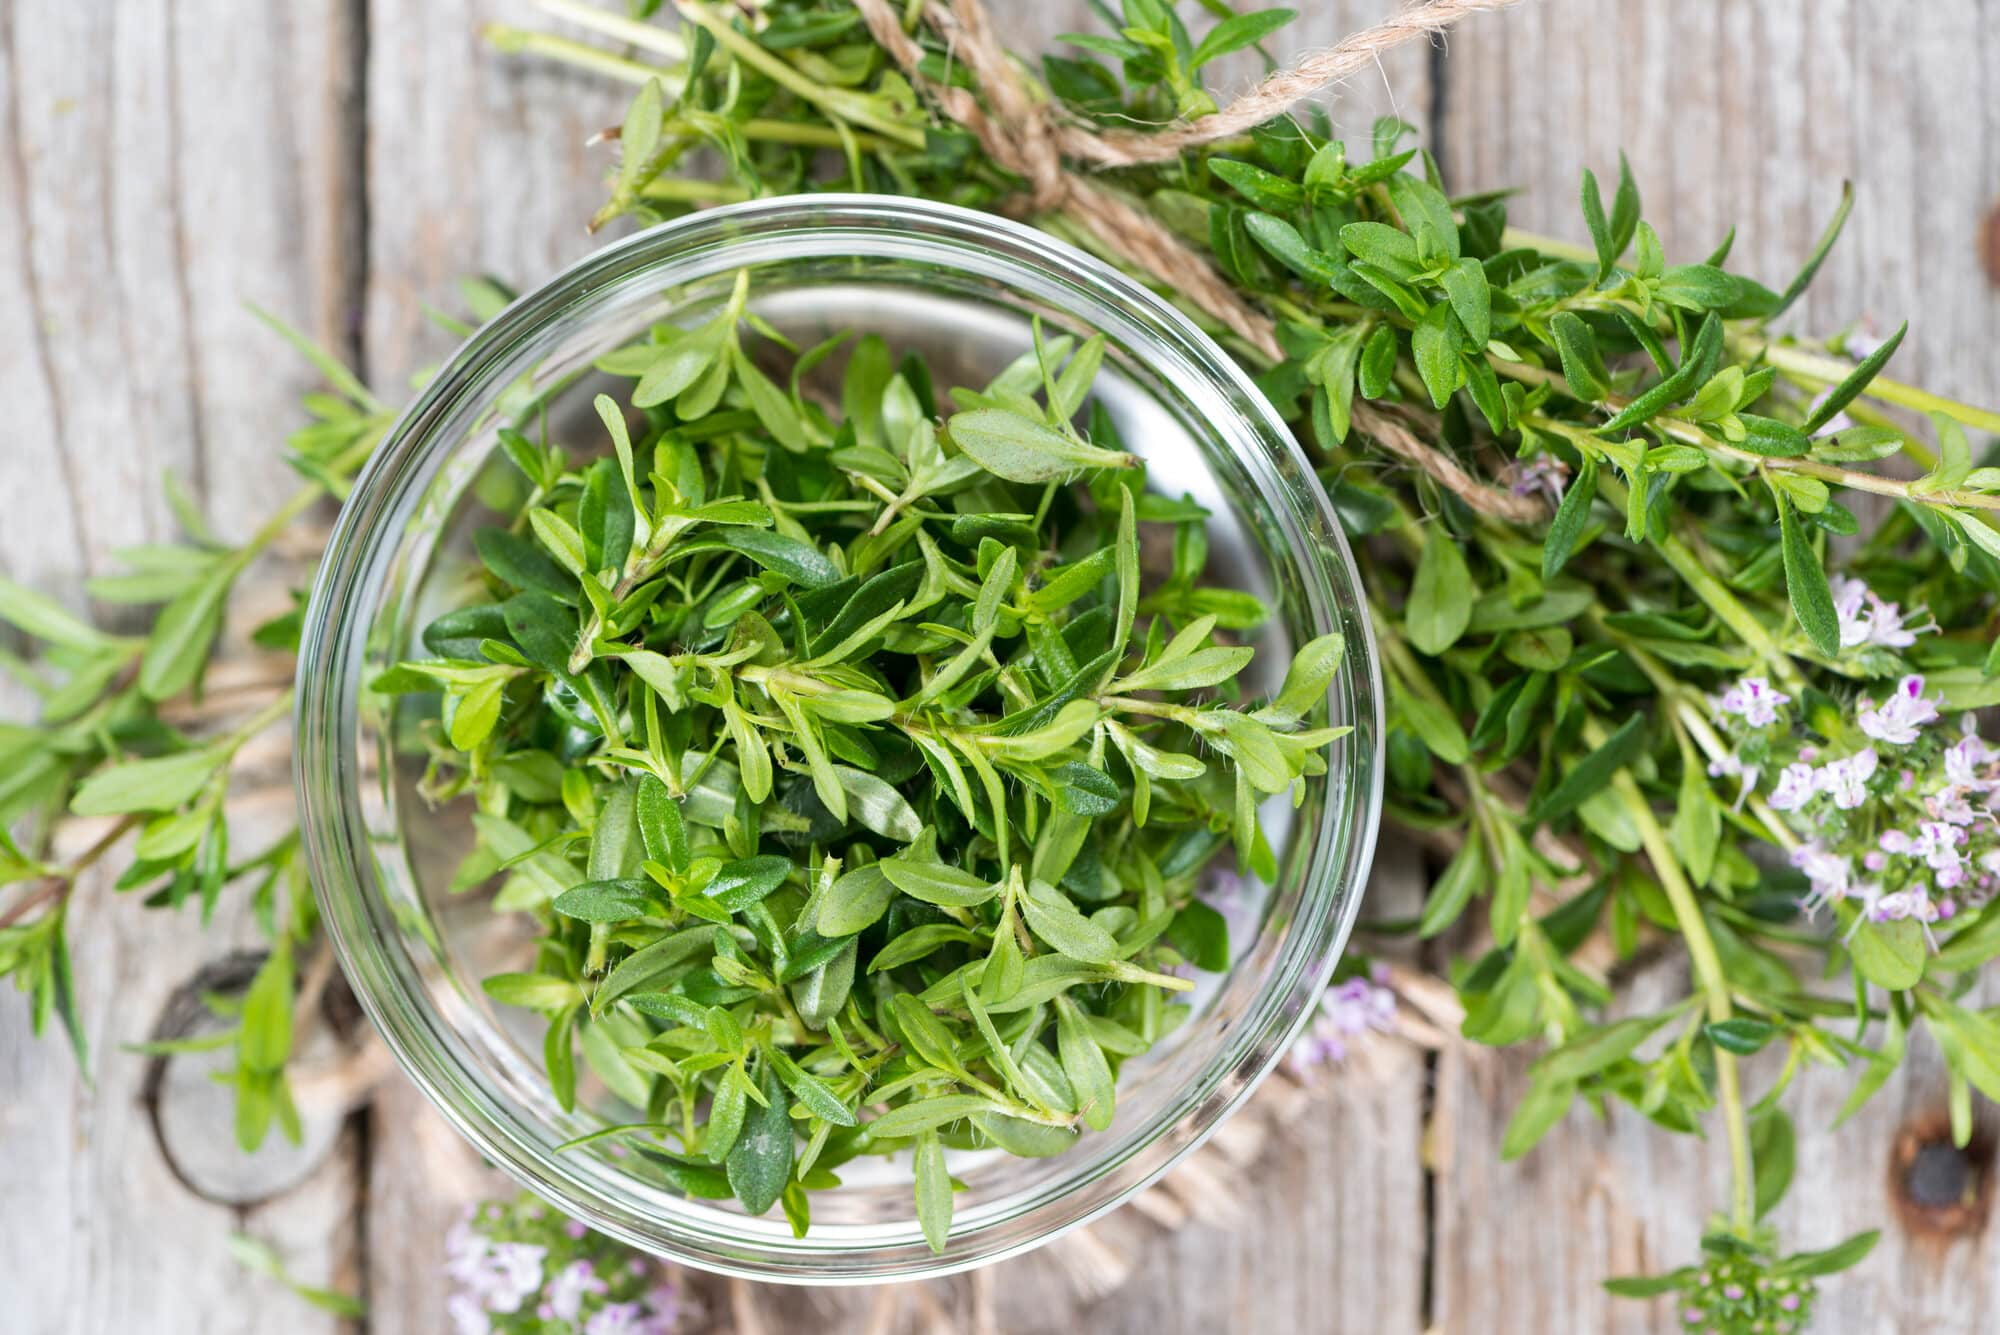 What's A Good Winter Savory Substitute?